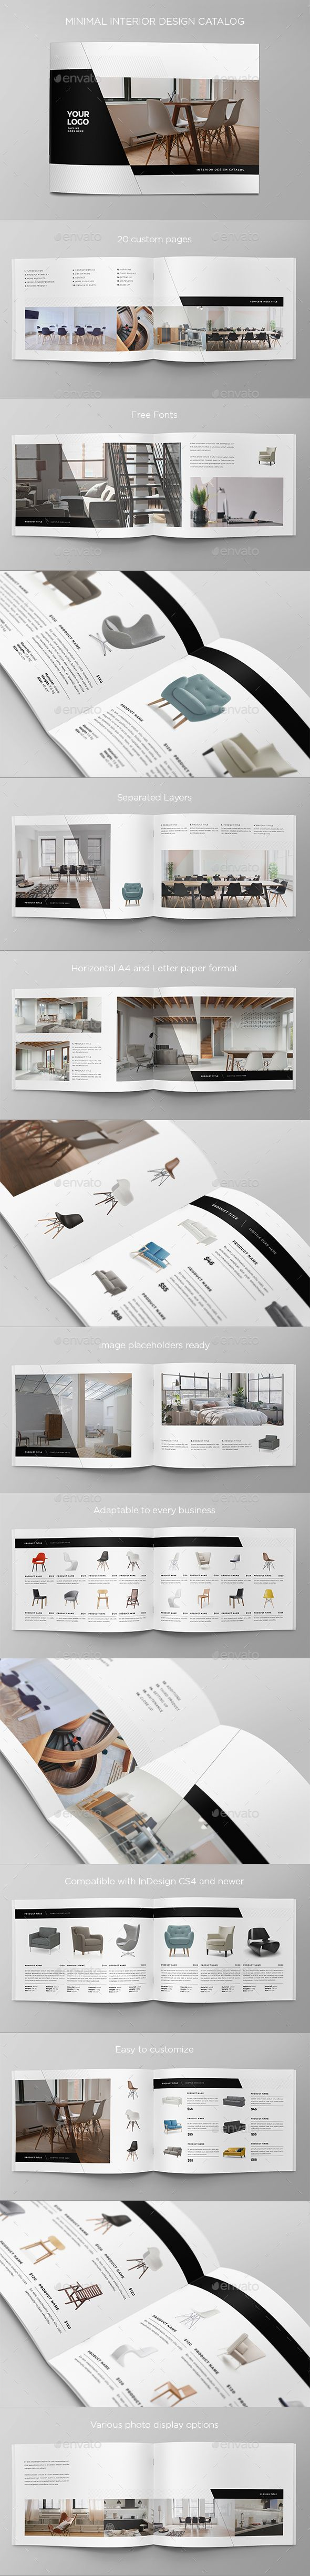 Minimal Interior Design Catalog - Catalogs Brochures